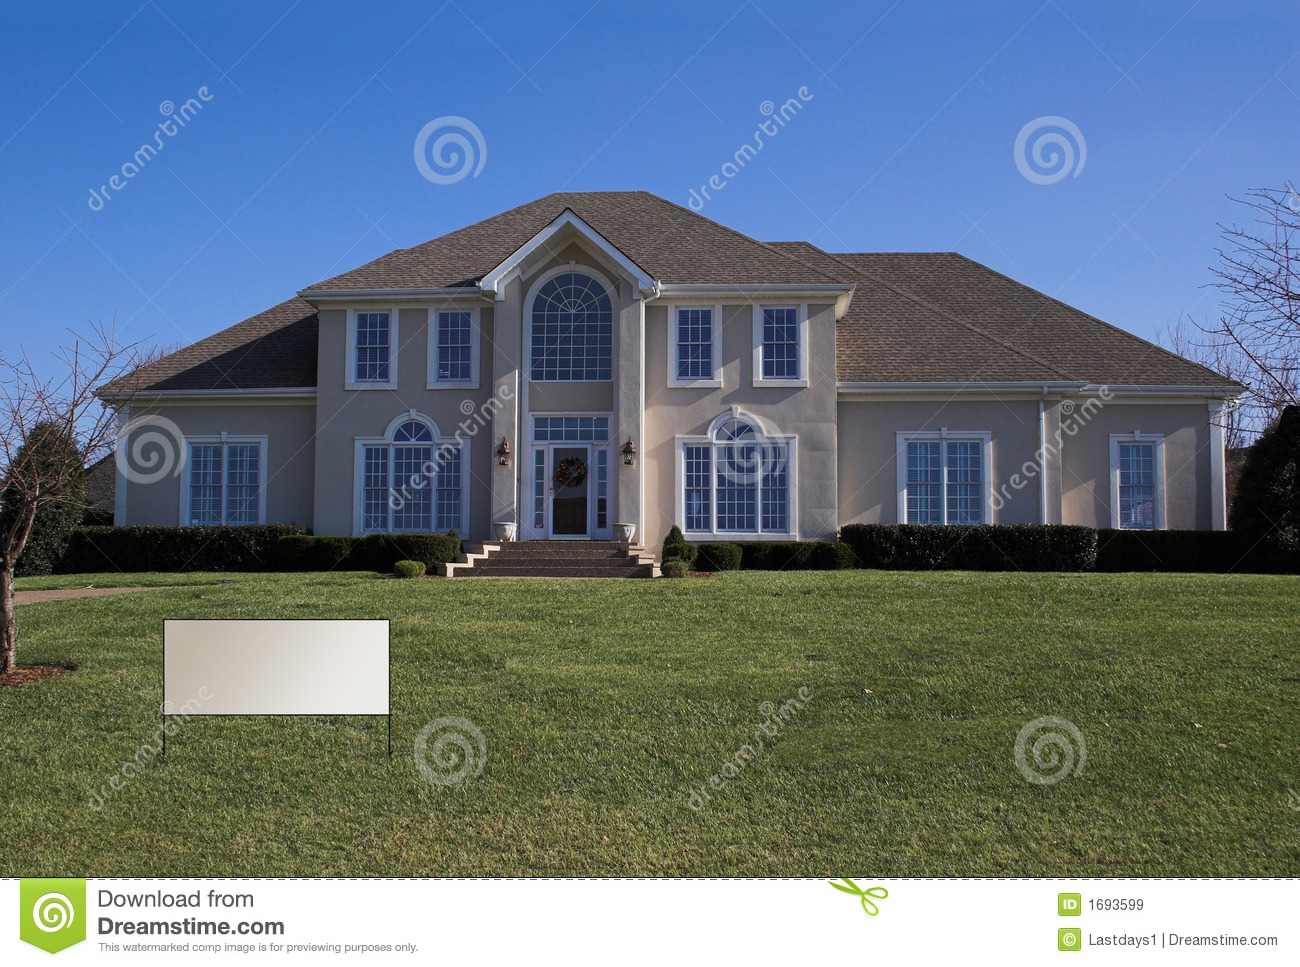 Beautiful homes series b4 royalty free stock images for Home beautiful images